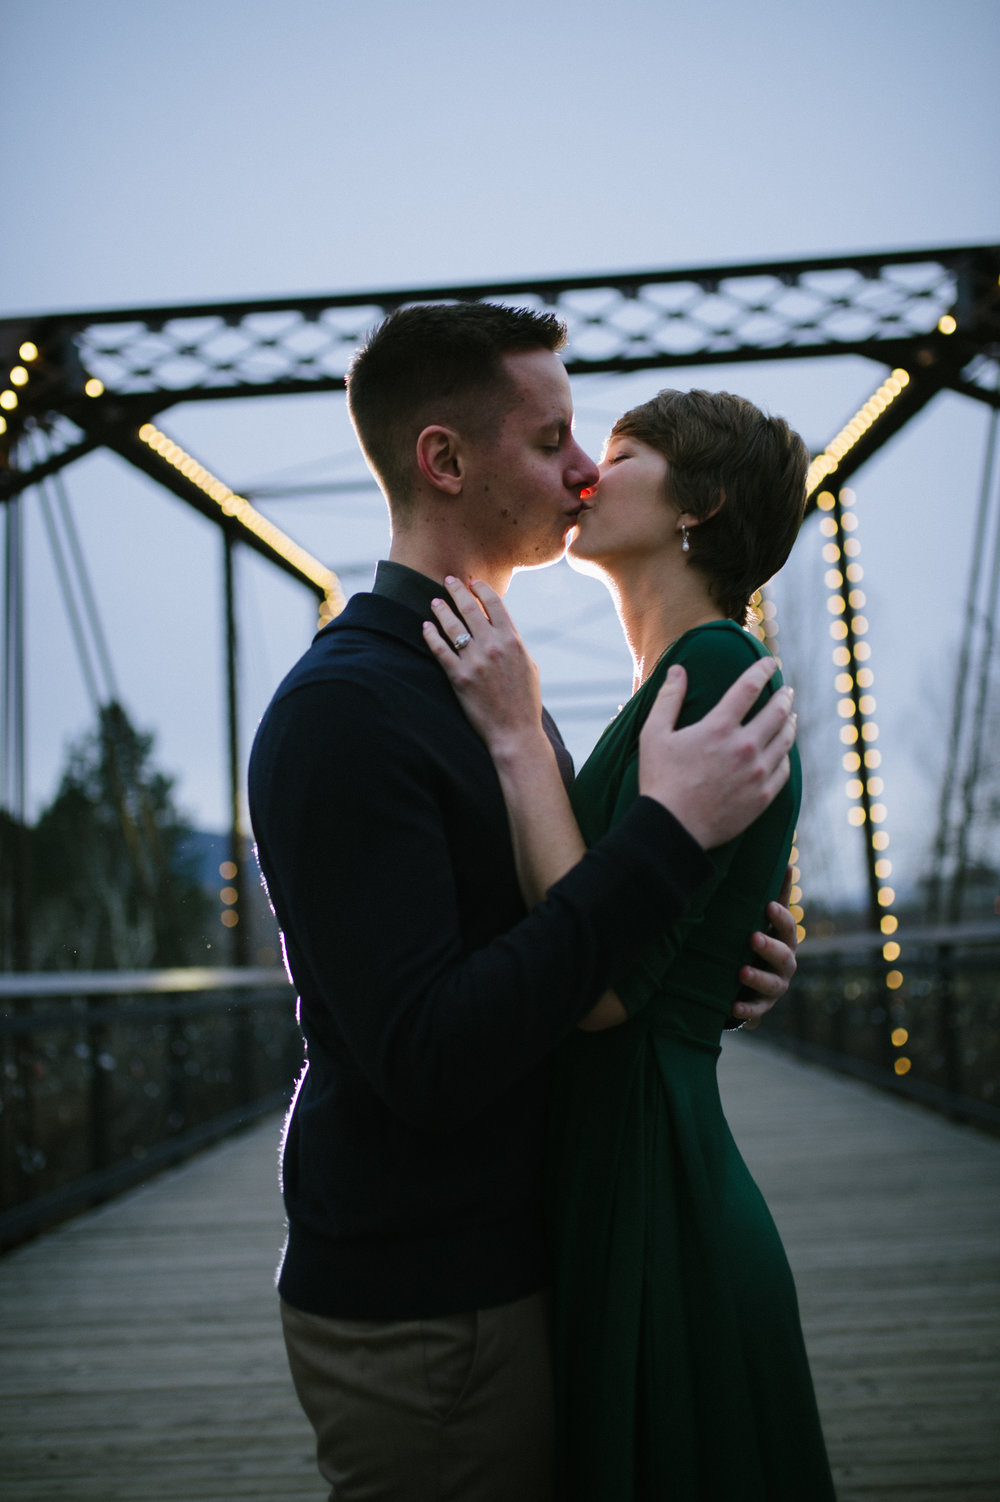 Missoula Engagement_Singing in the Rain Engagement_Maclay Flat Engagement_Montgomery Distillery Engagement_Kelsey Lane Photography-9825274.jpg